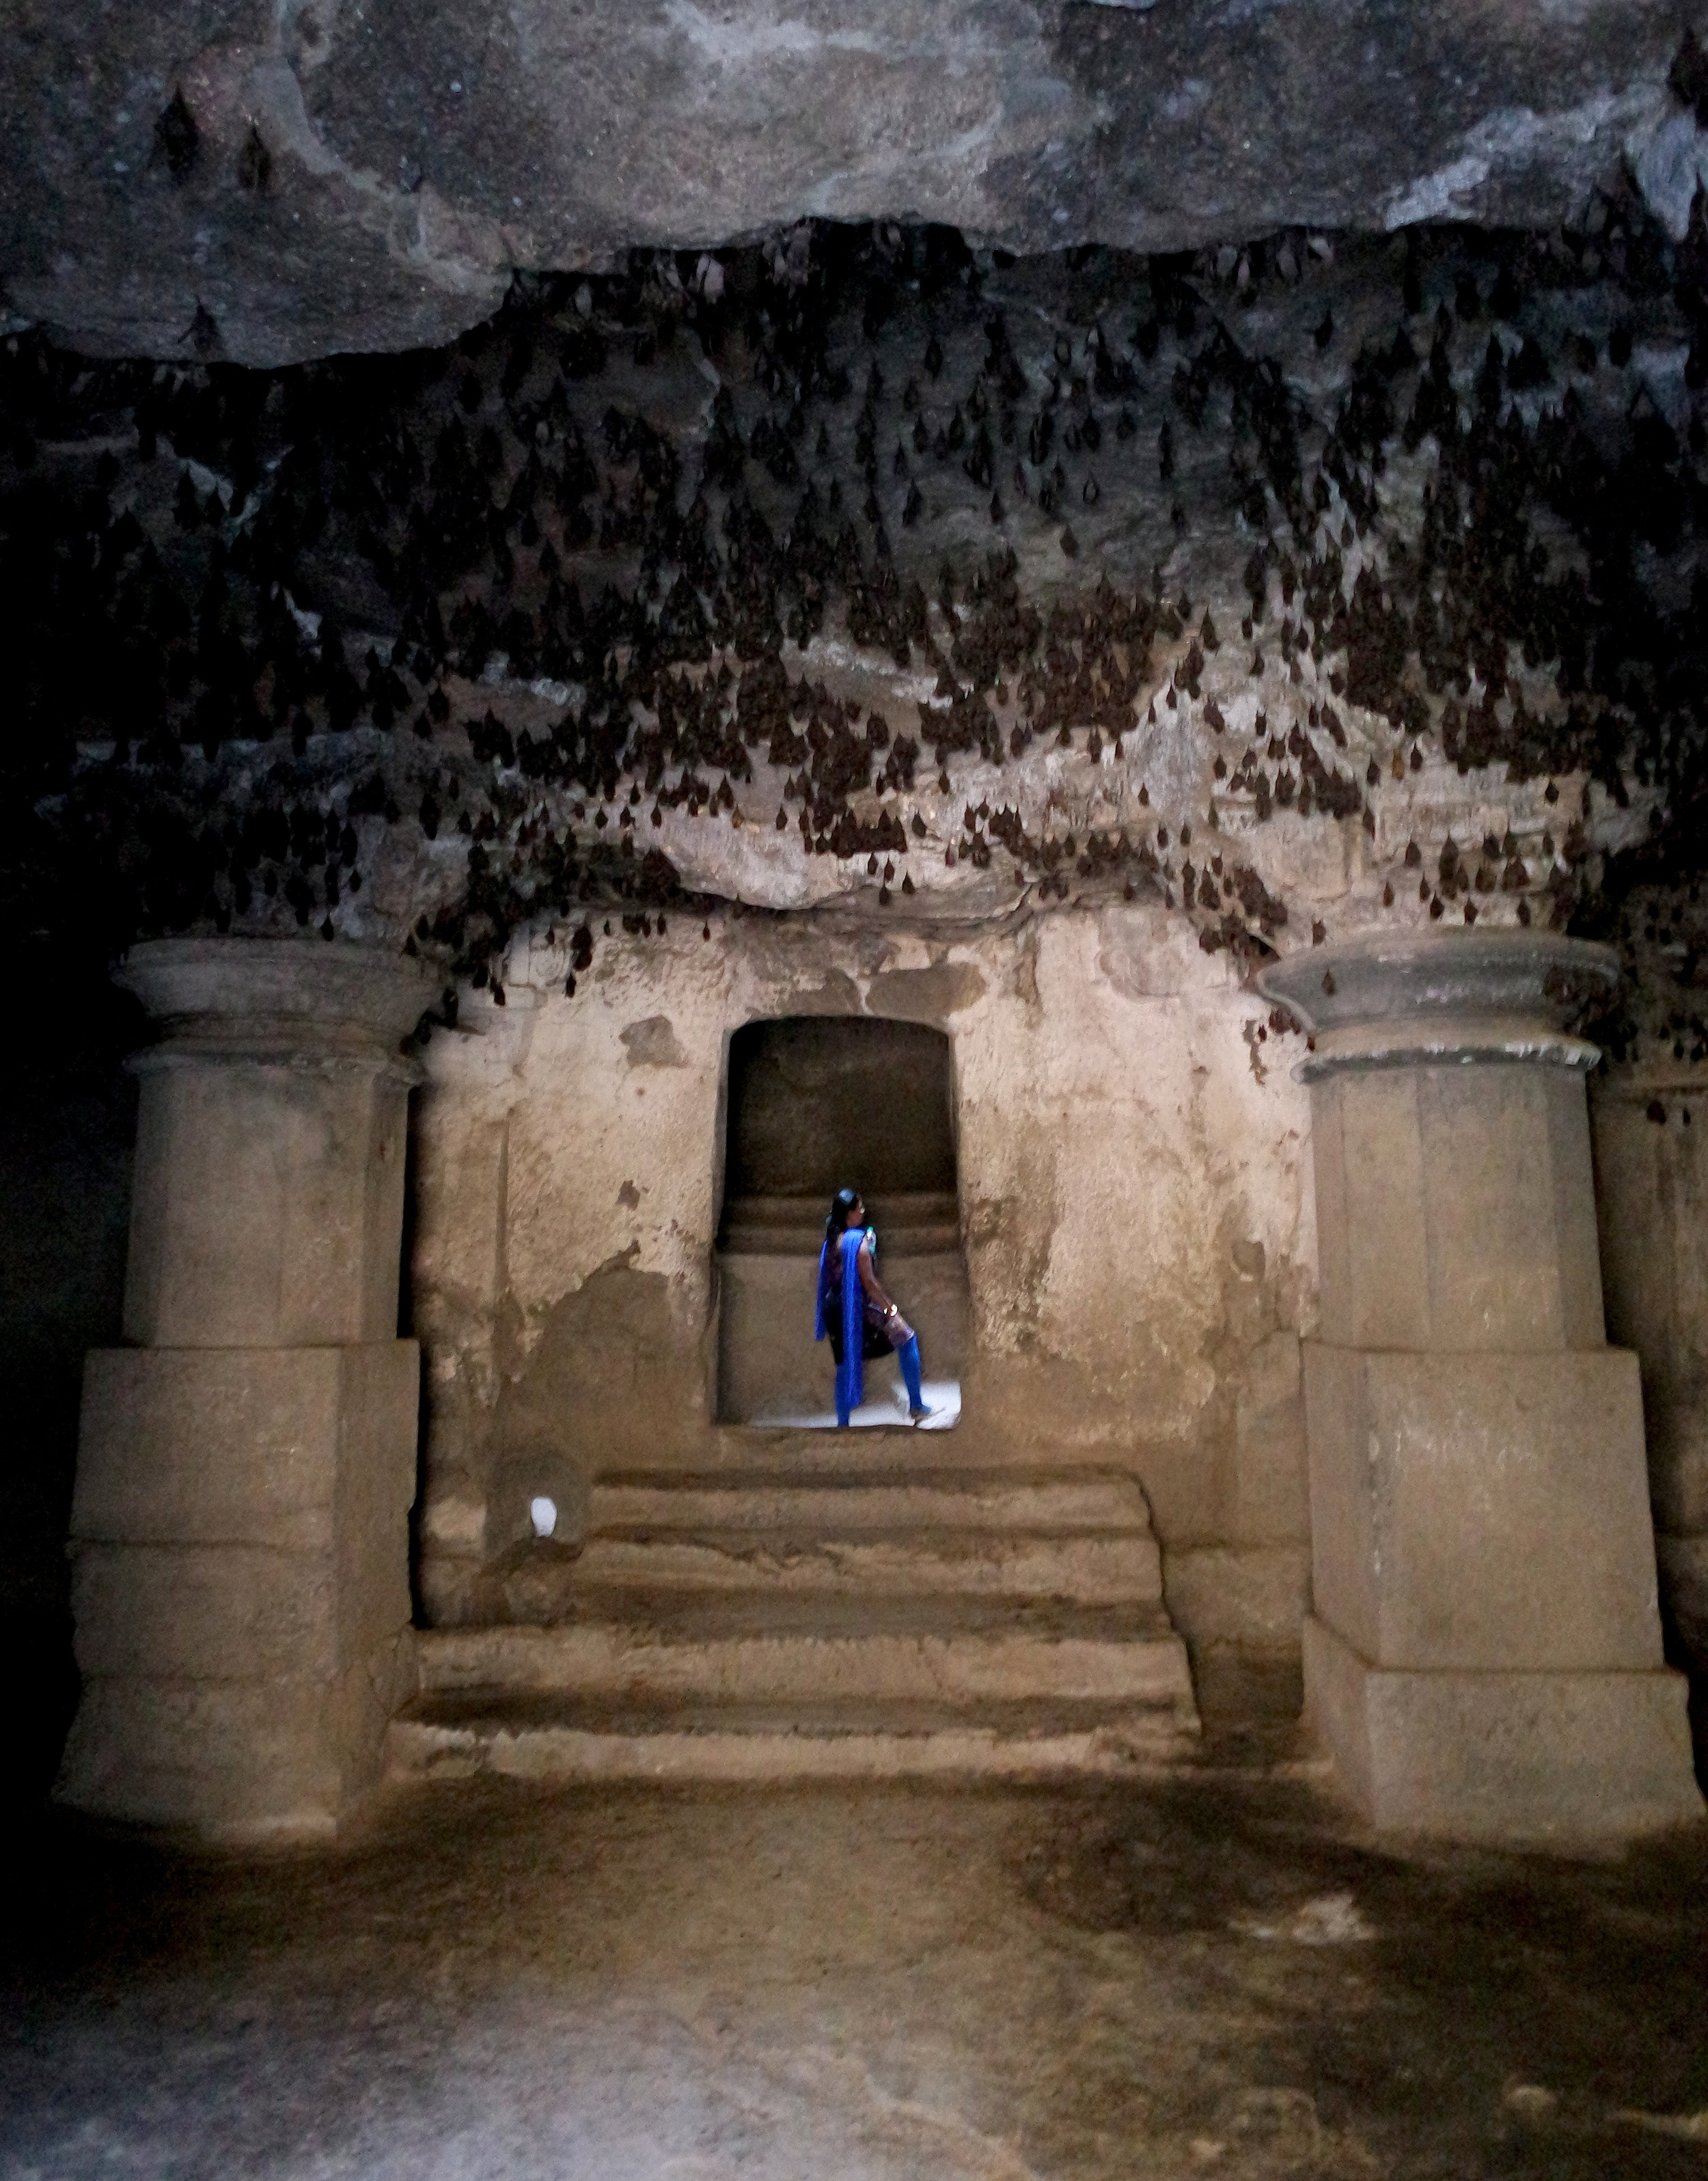 The freaky bat cave at Daulatabad, India